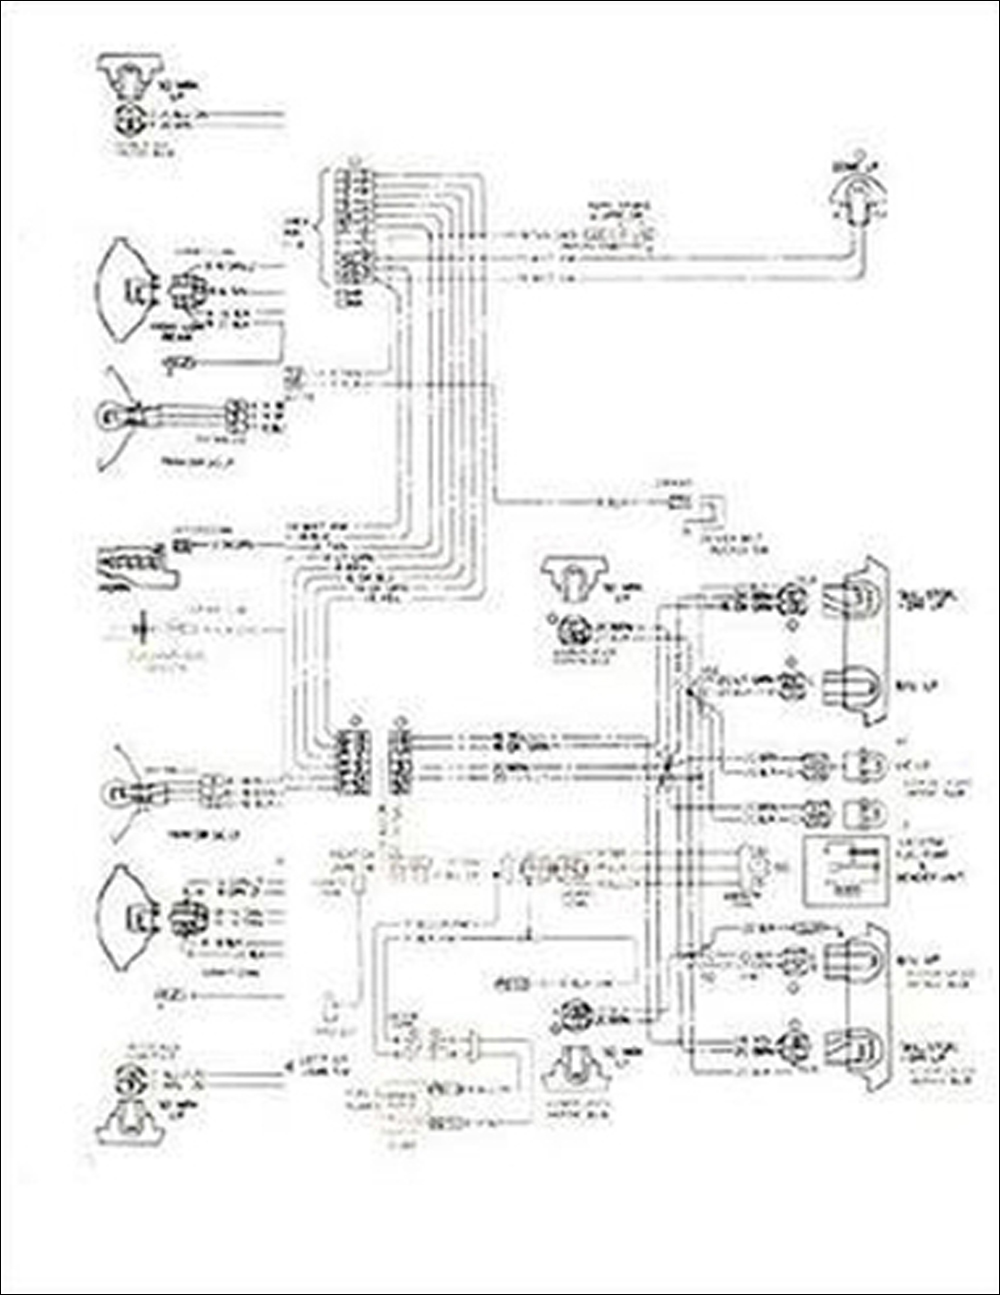 1976 Wiring Diagram Manual Chevelle El Camino Malibu Monte Carlo 1973 And Original